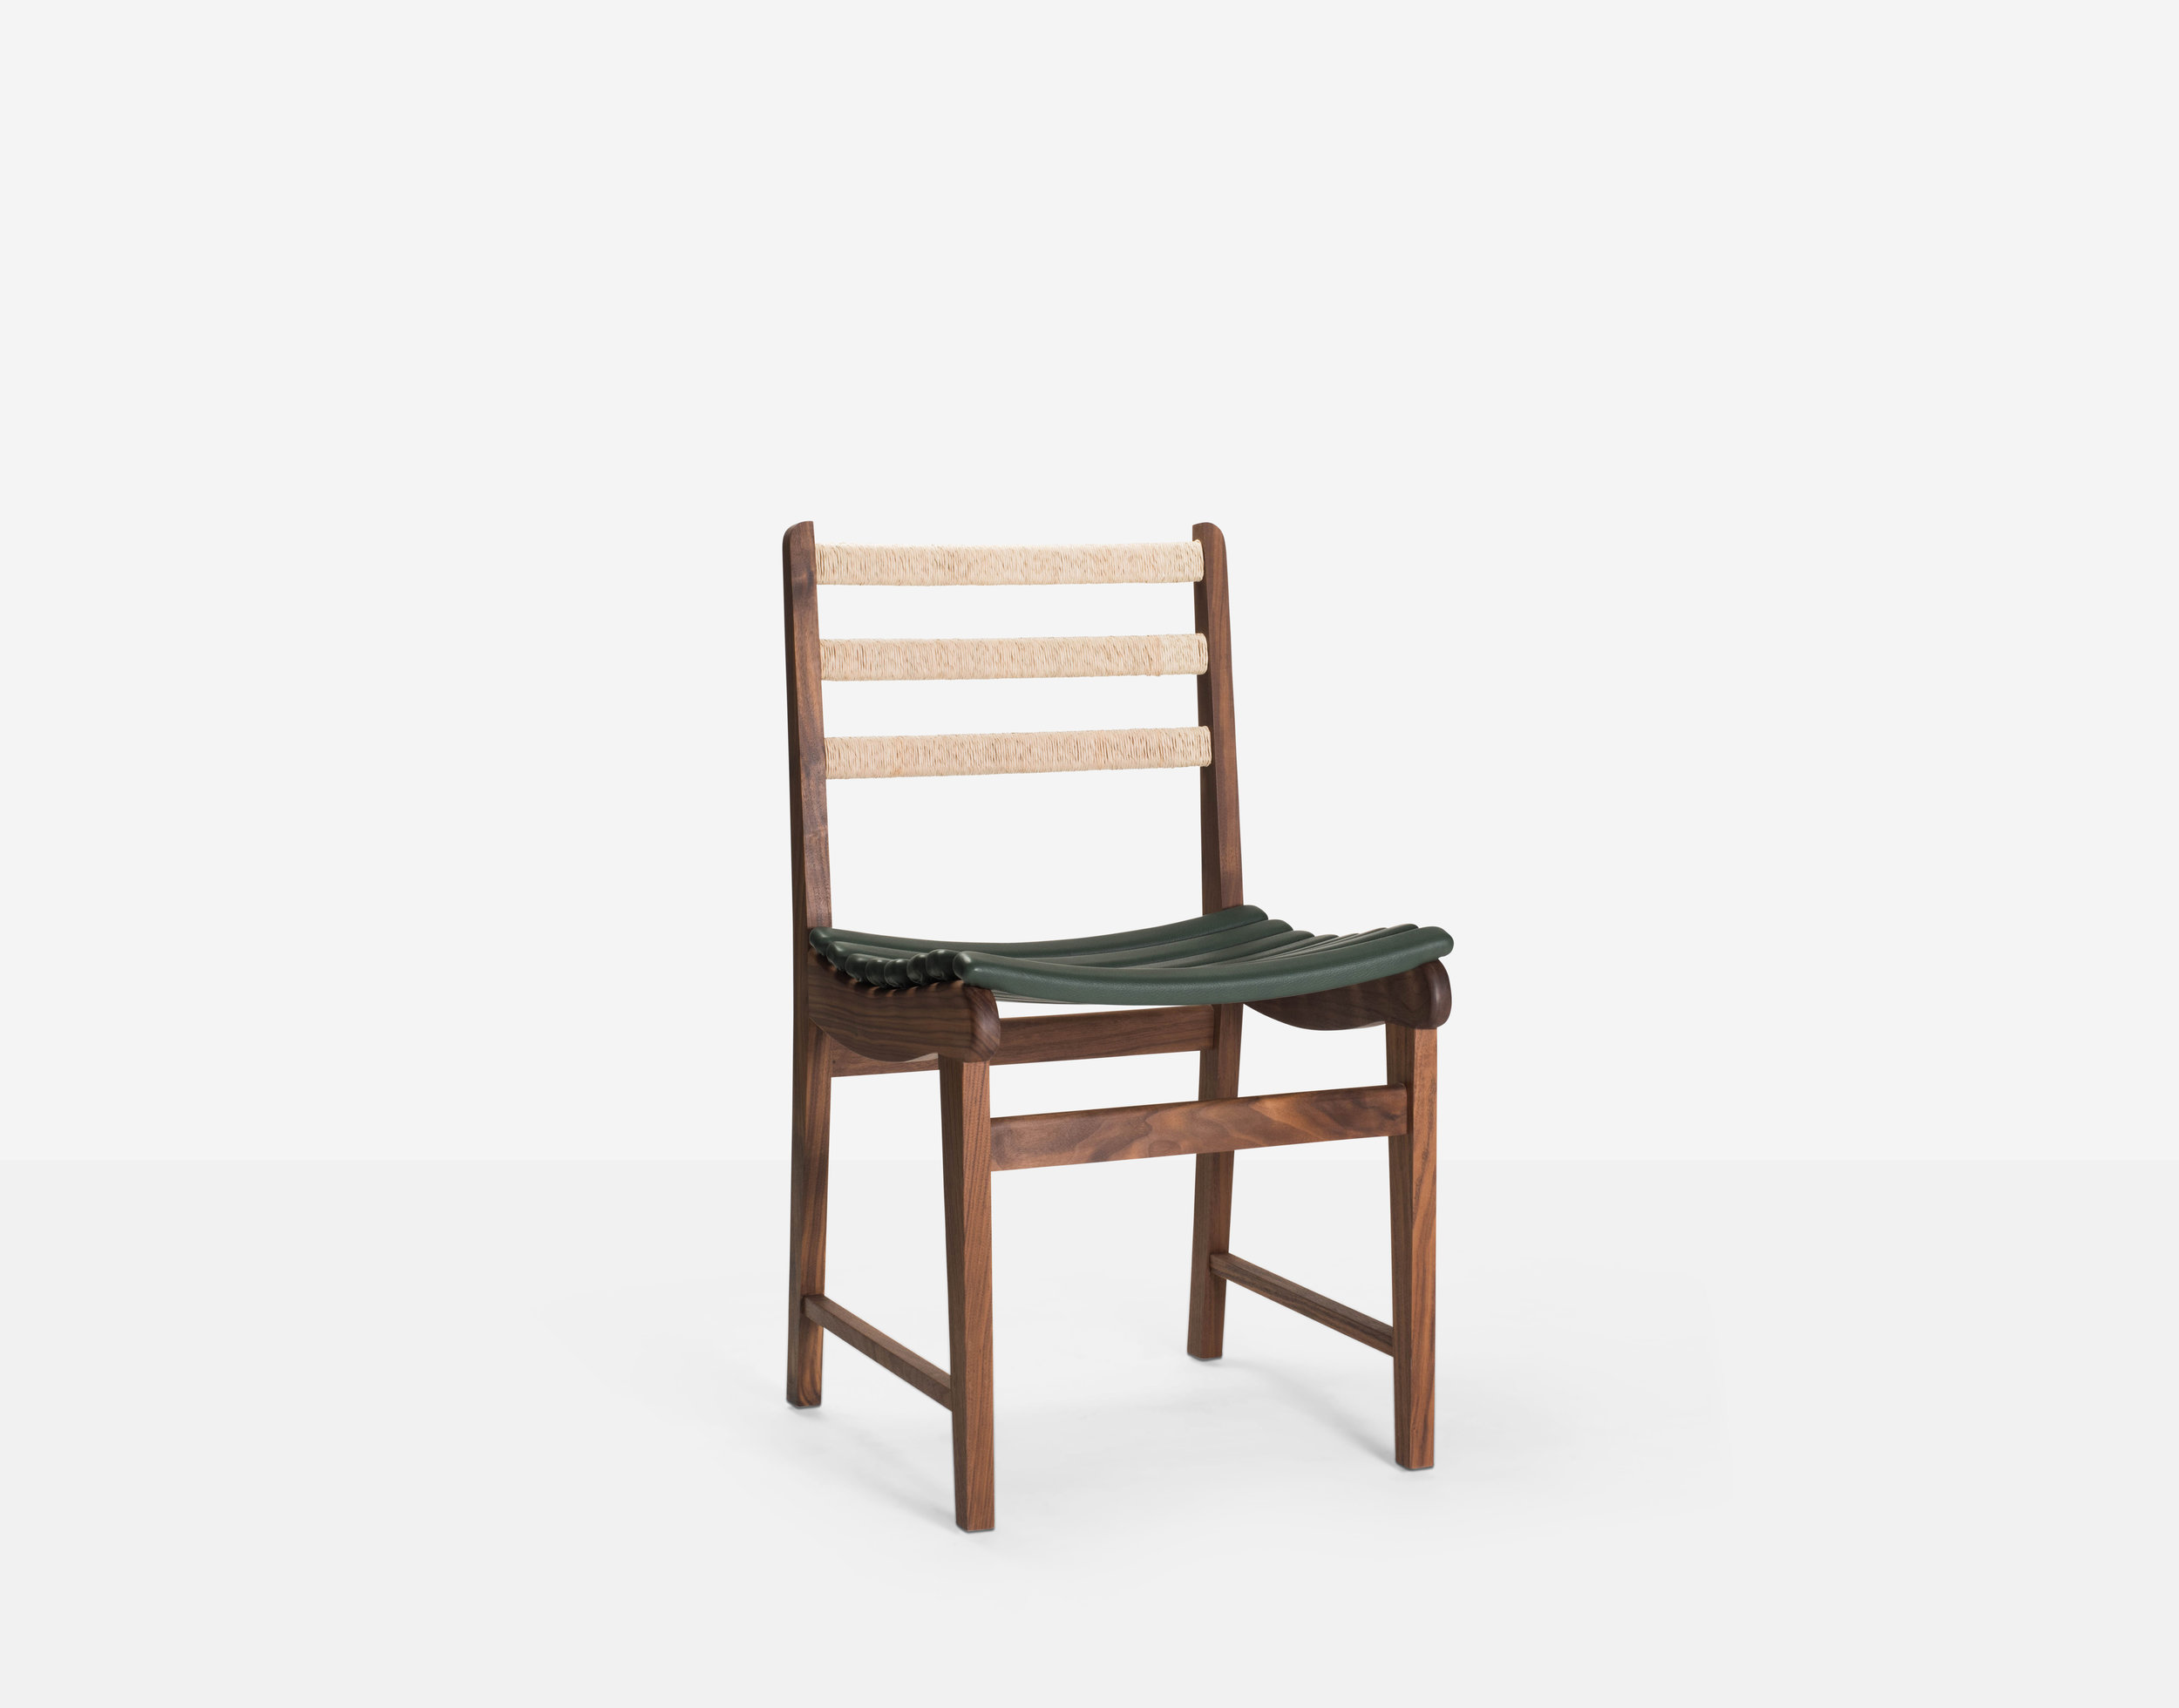 Luteca_MvB_San Miguelito-Dining Chair_Walnut_Green-Leather_FP-W.jpg